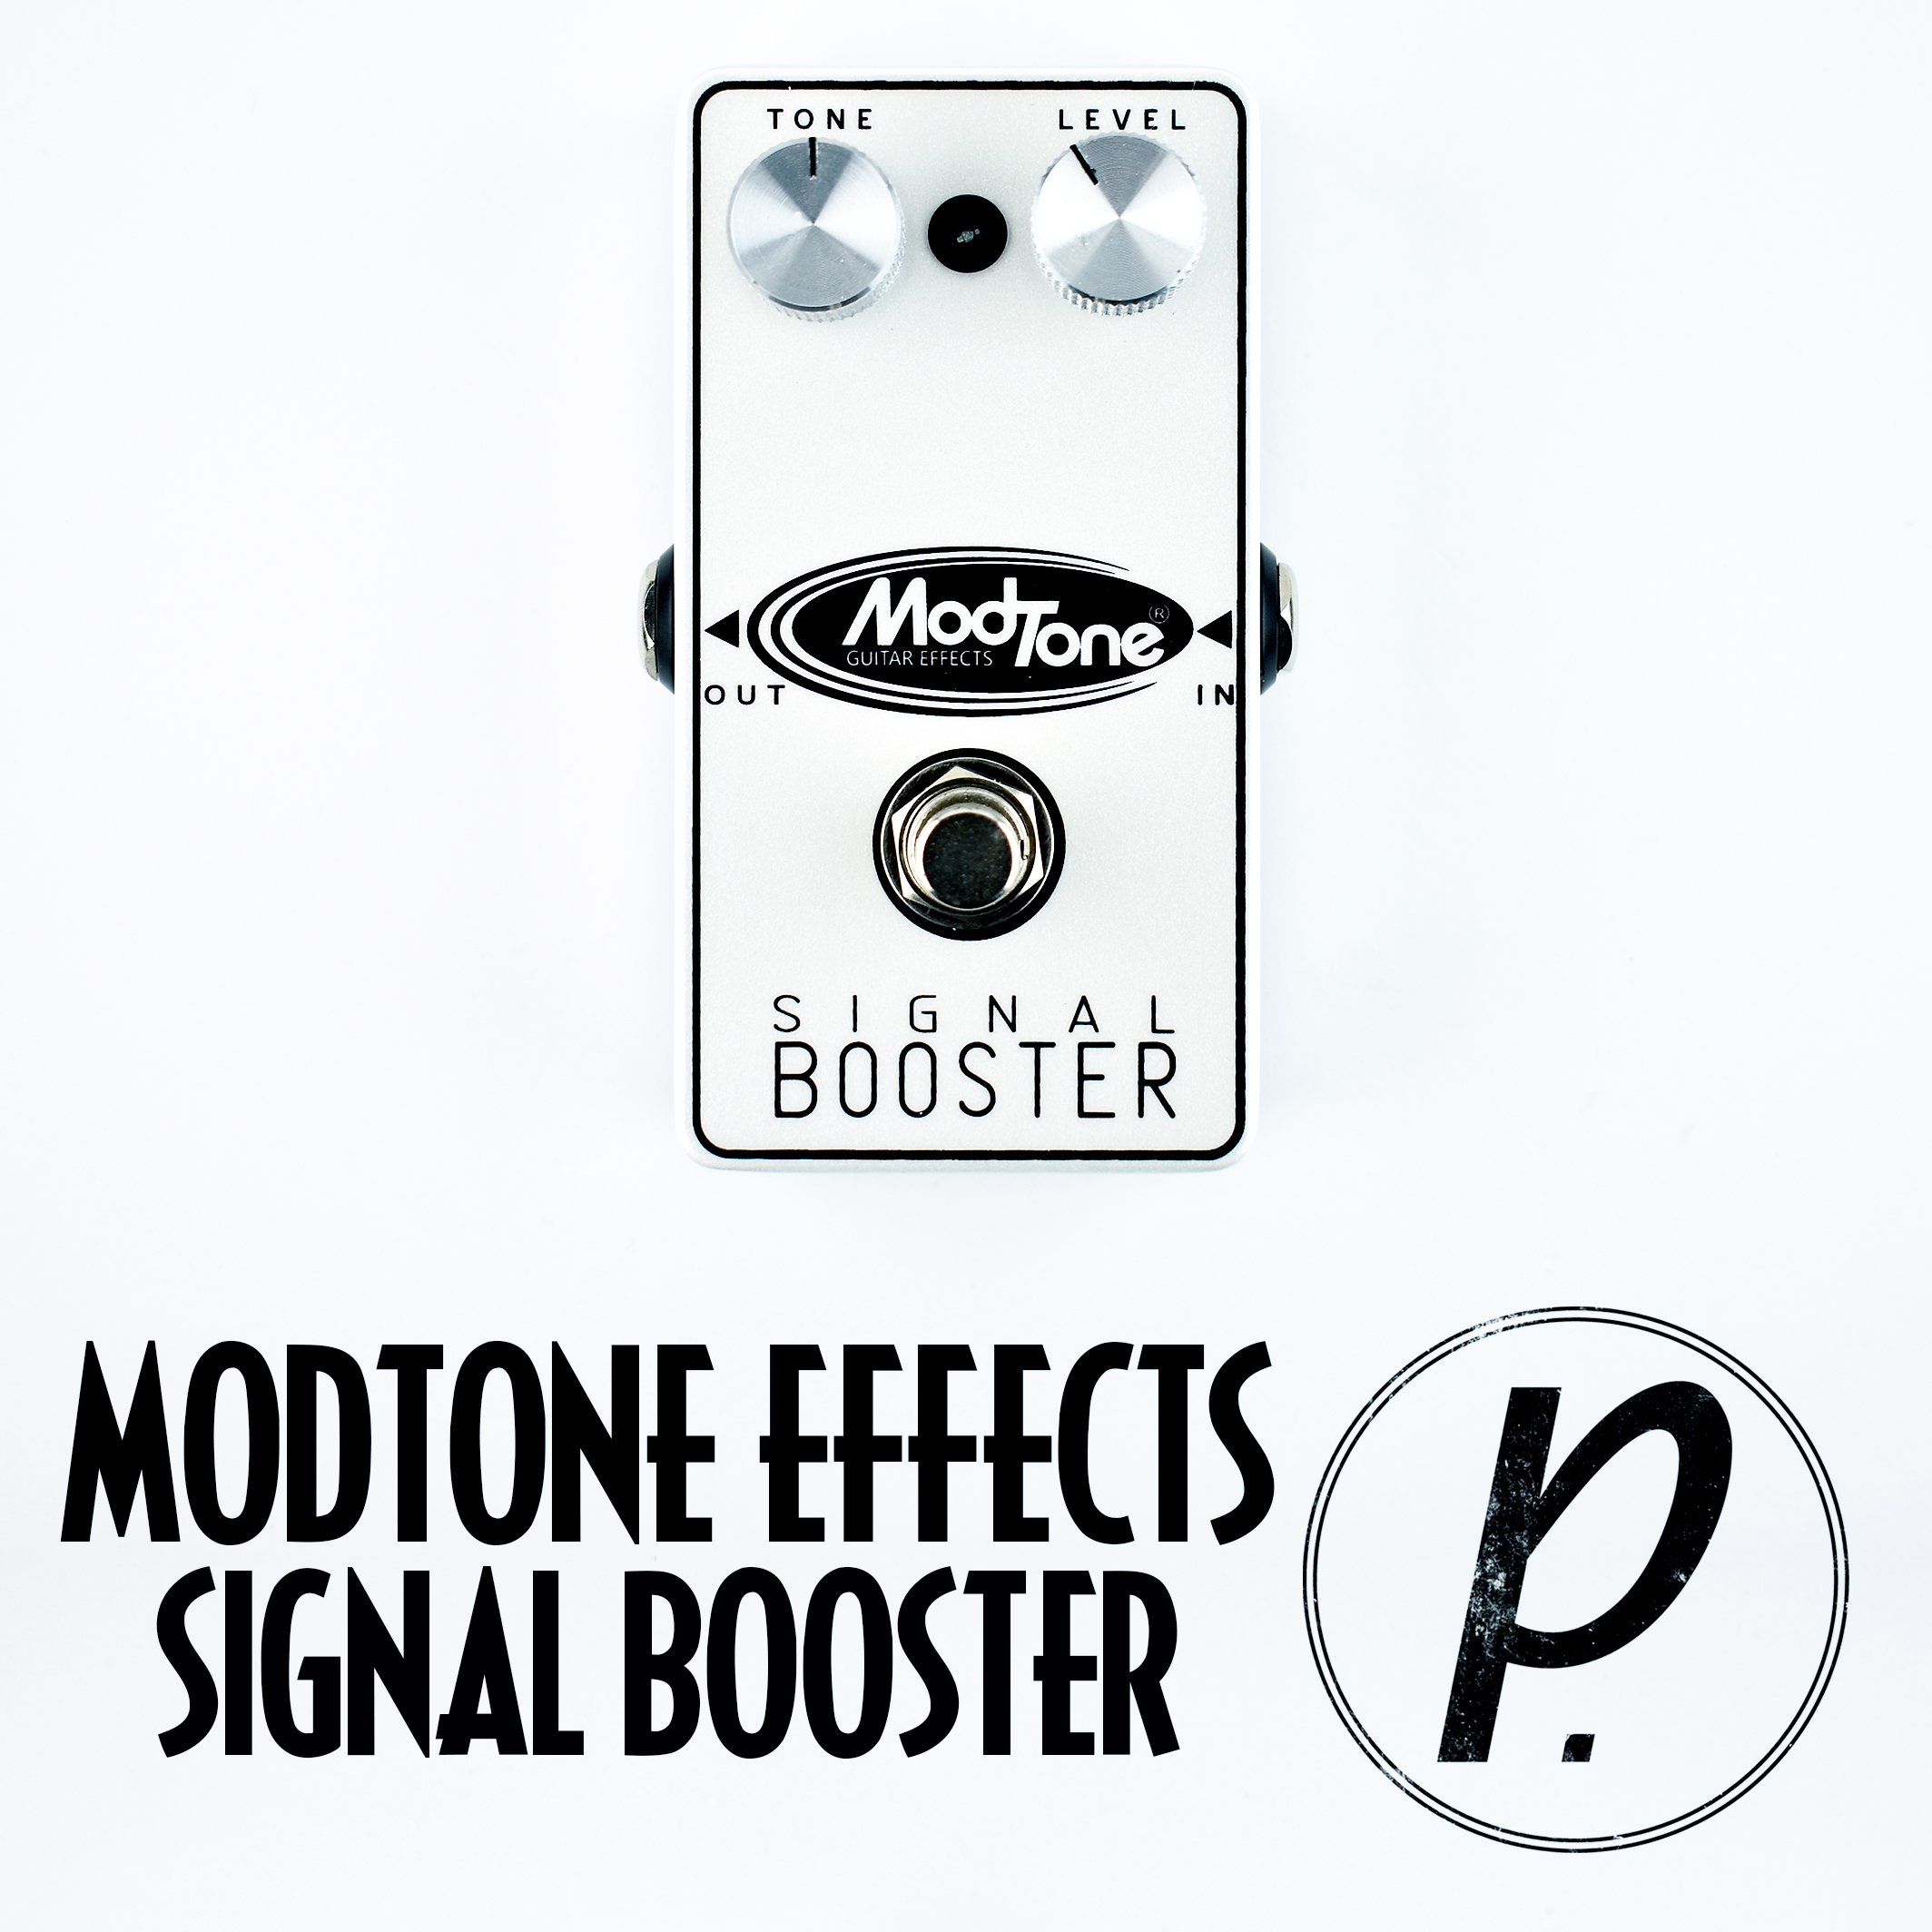 modtone effects mt-sb signal booster